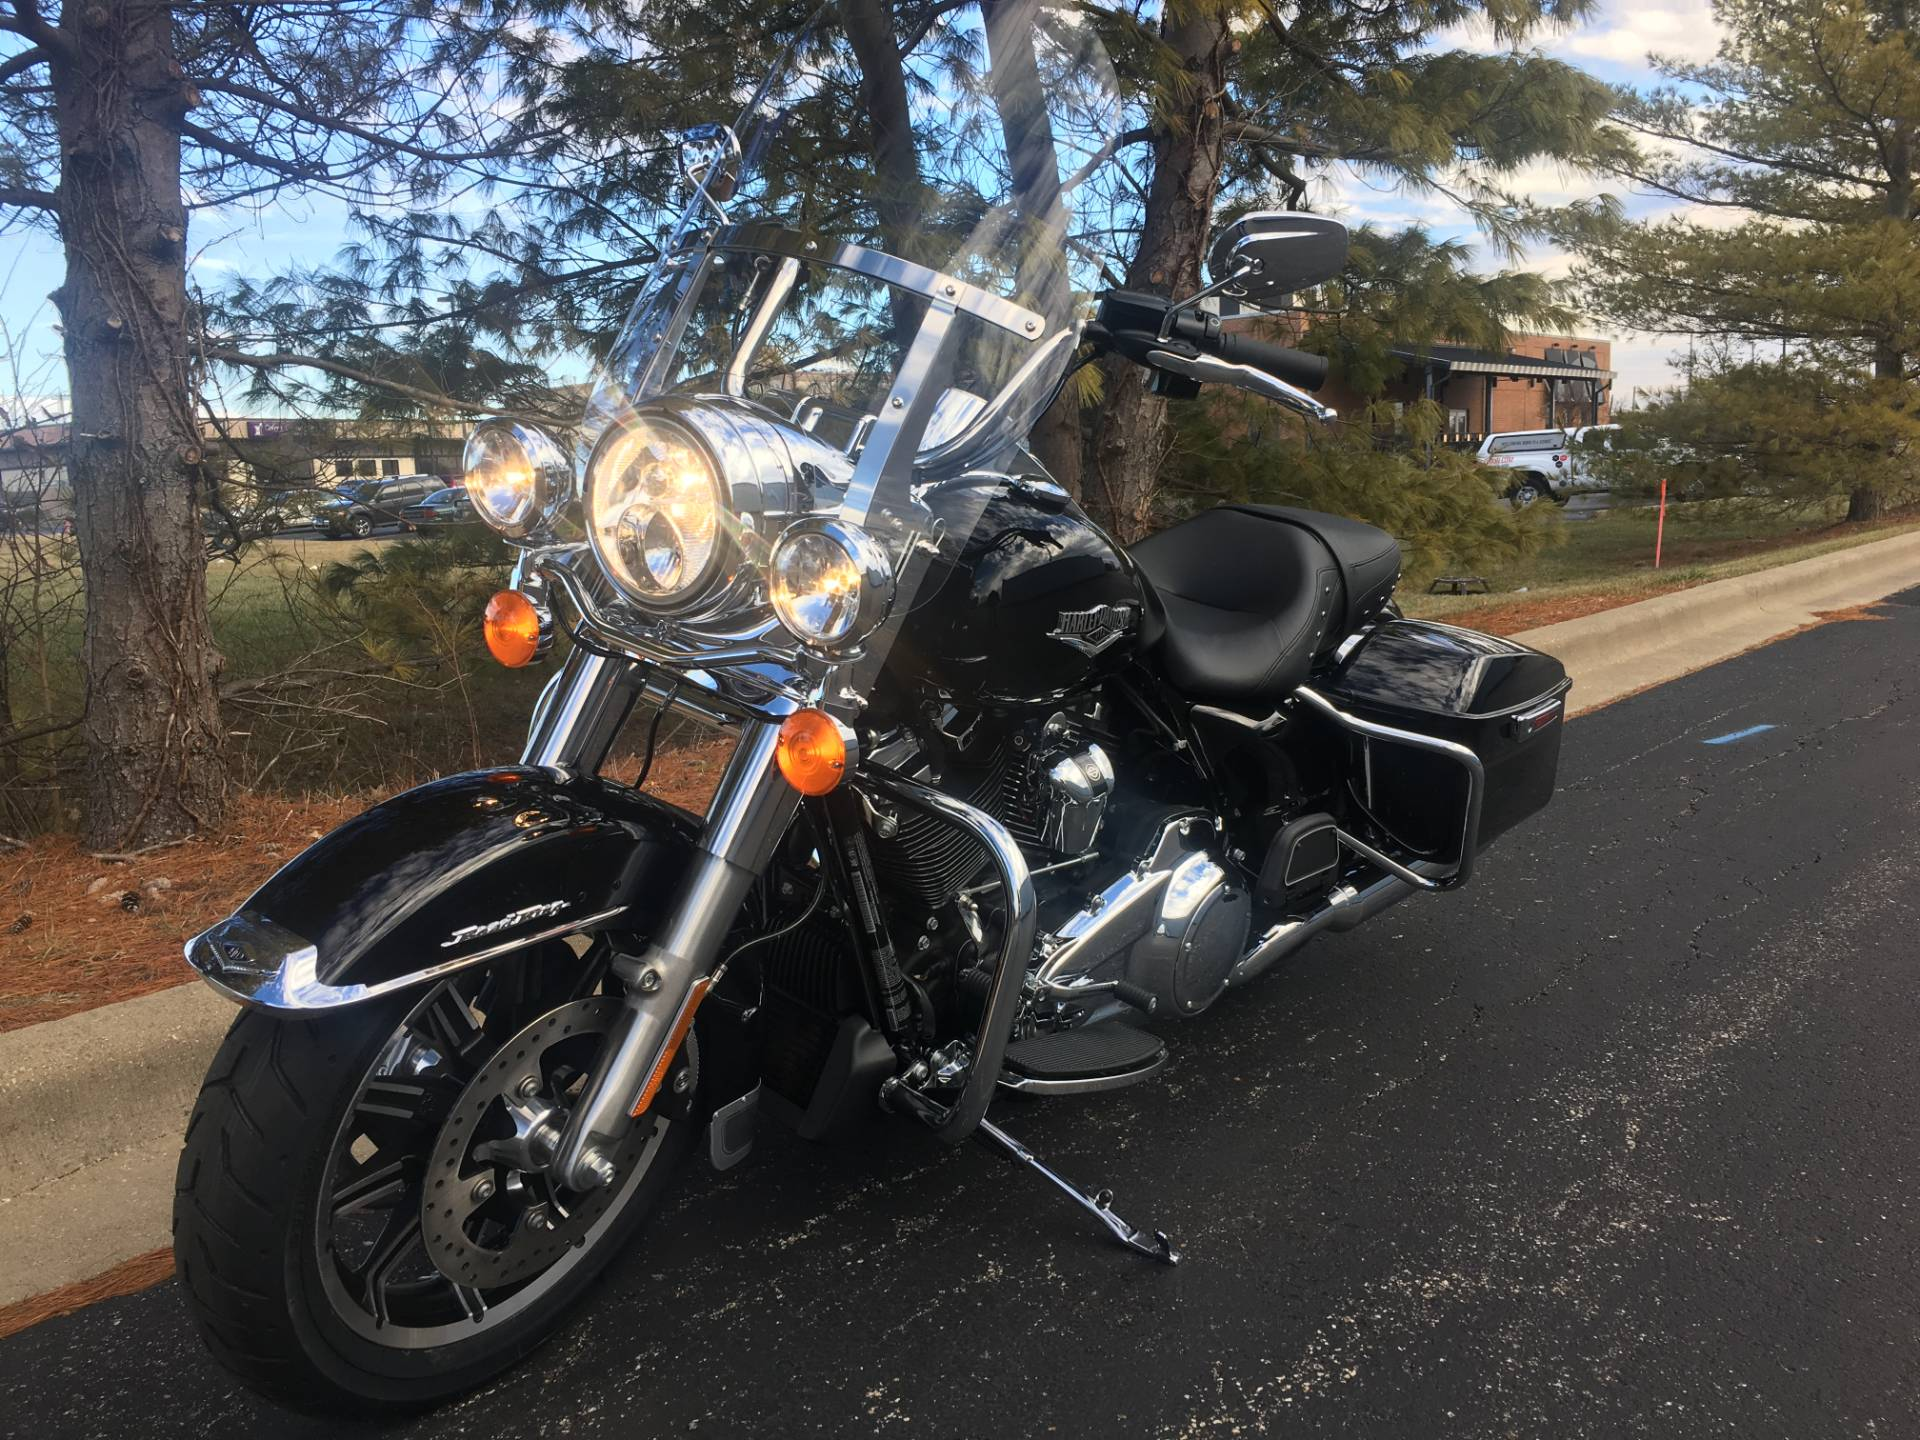 2019 Harley-Davidson Road King in Forsyth, Illinois